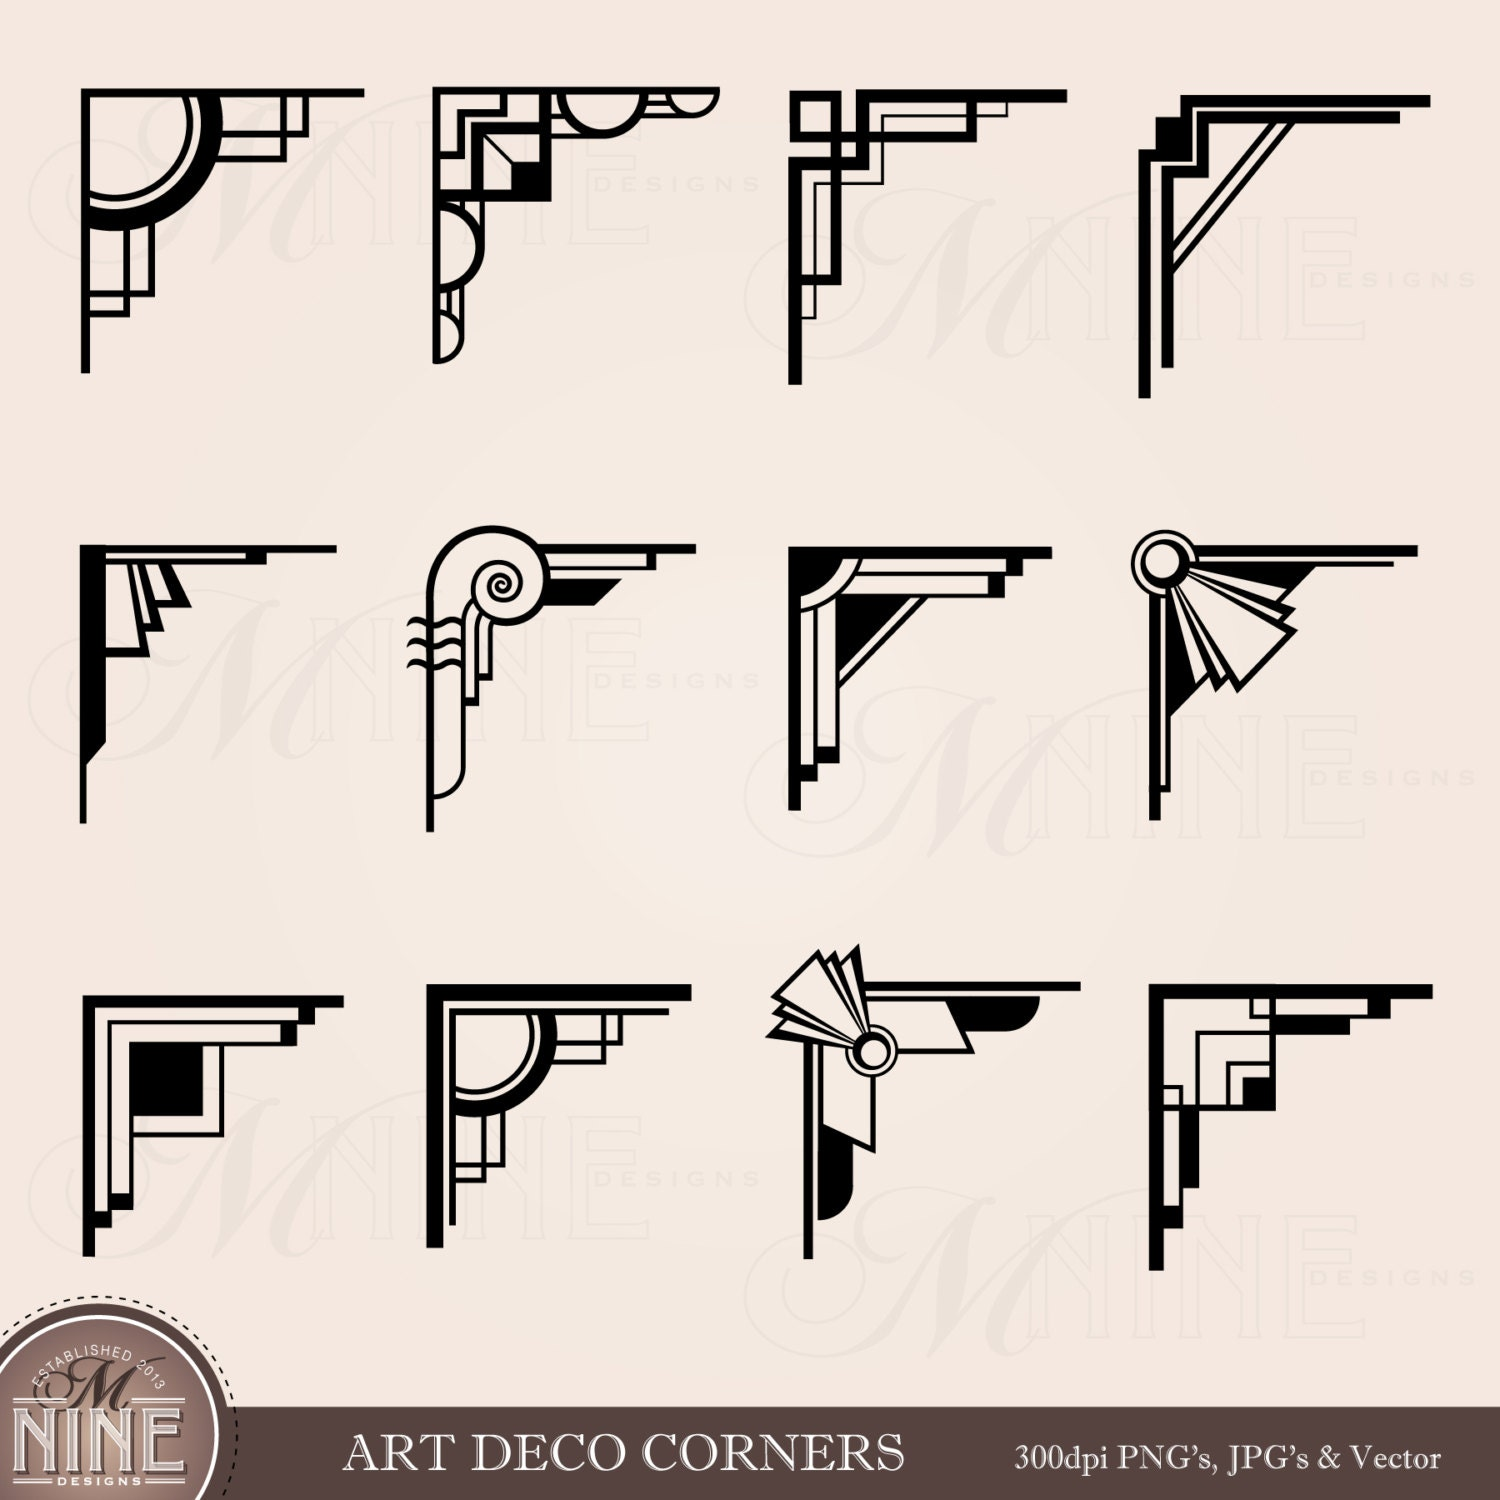 Art deco corners clipart digital clip art instant download for Design art deco